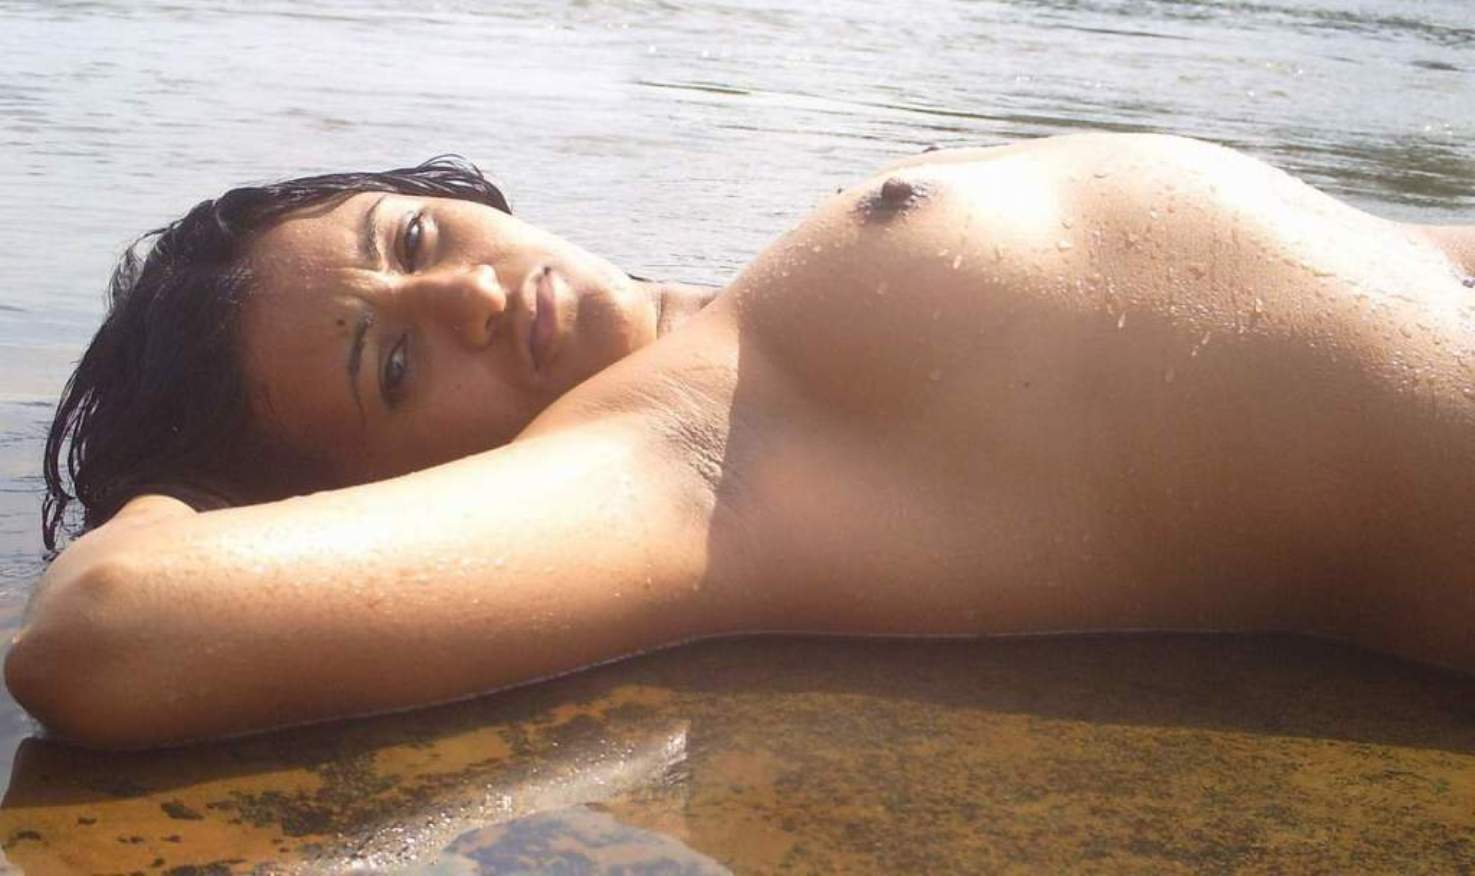 hot-indian-babes-in-nude-beach-gator-boys-the-girls-in-it-naked